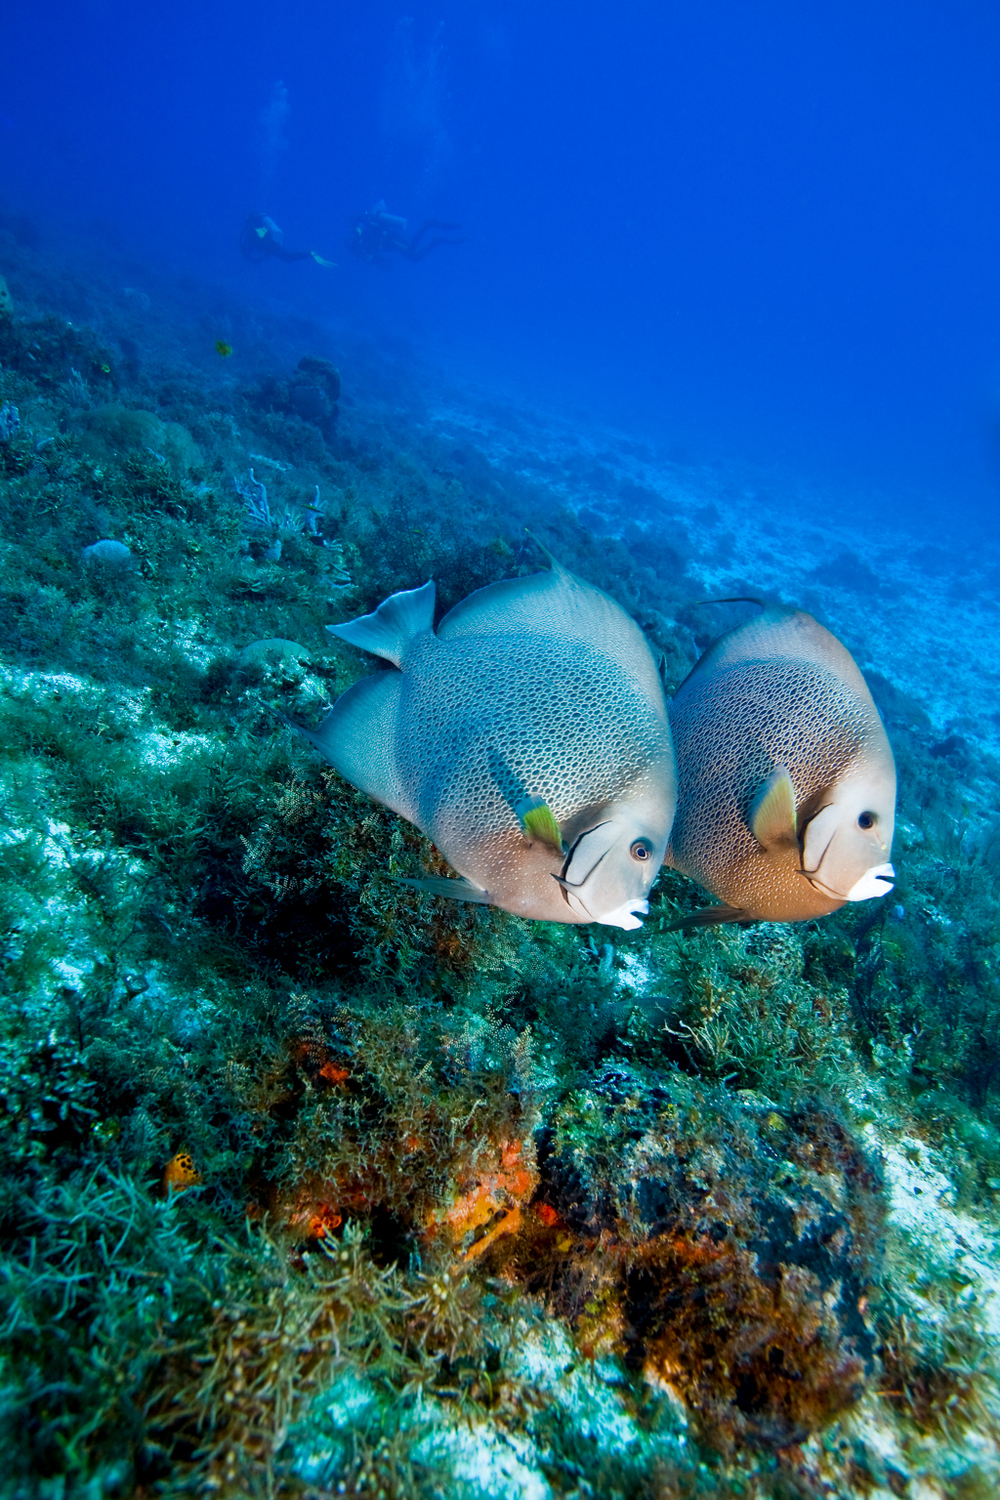 two gray angelfish Pomacanthus arcuotus, swimming in waters of Cozumel, Mexico, with divers in background